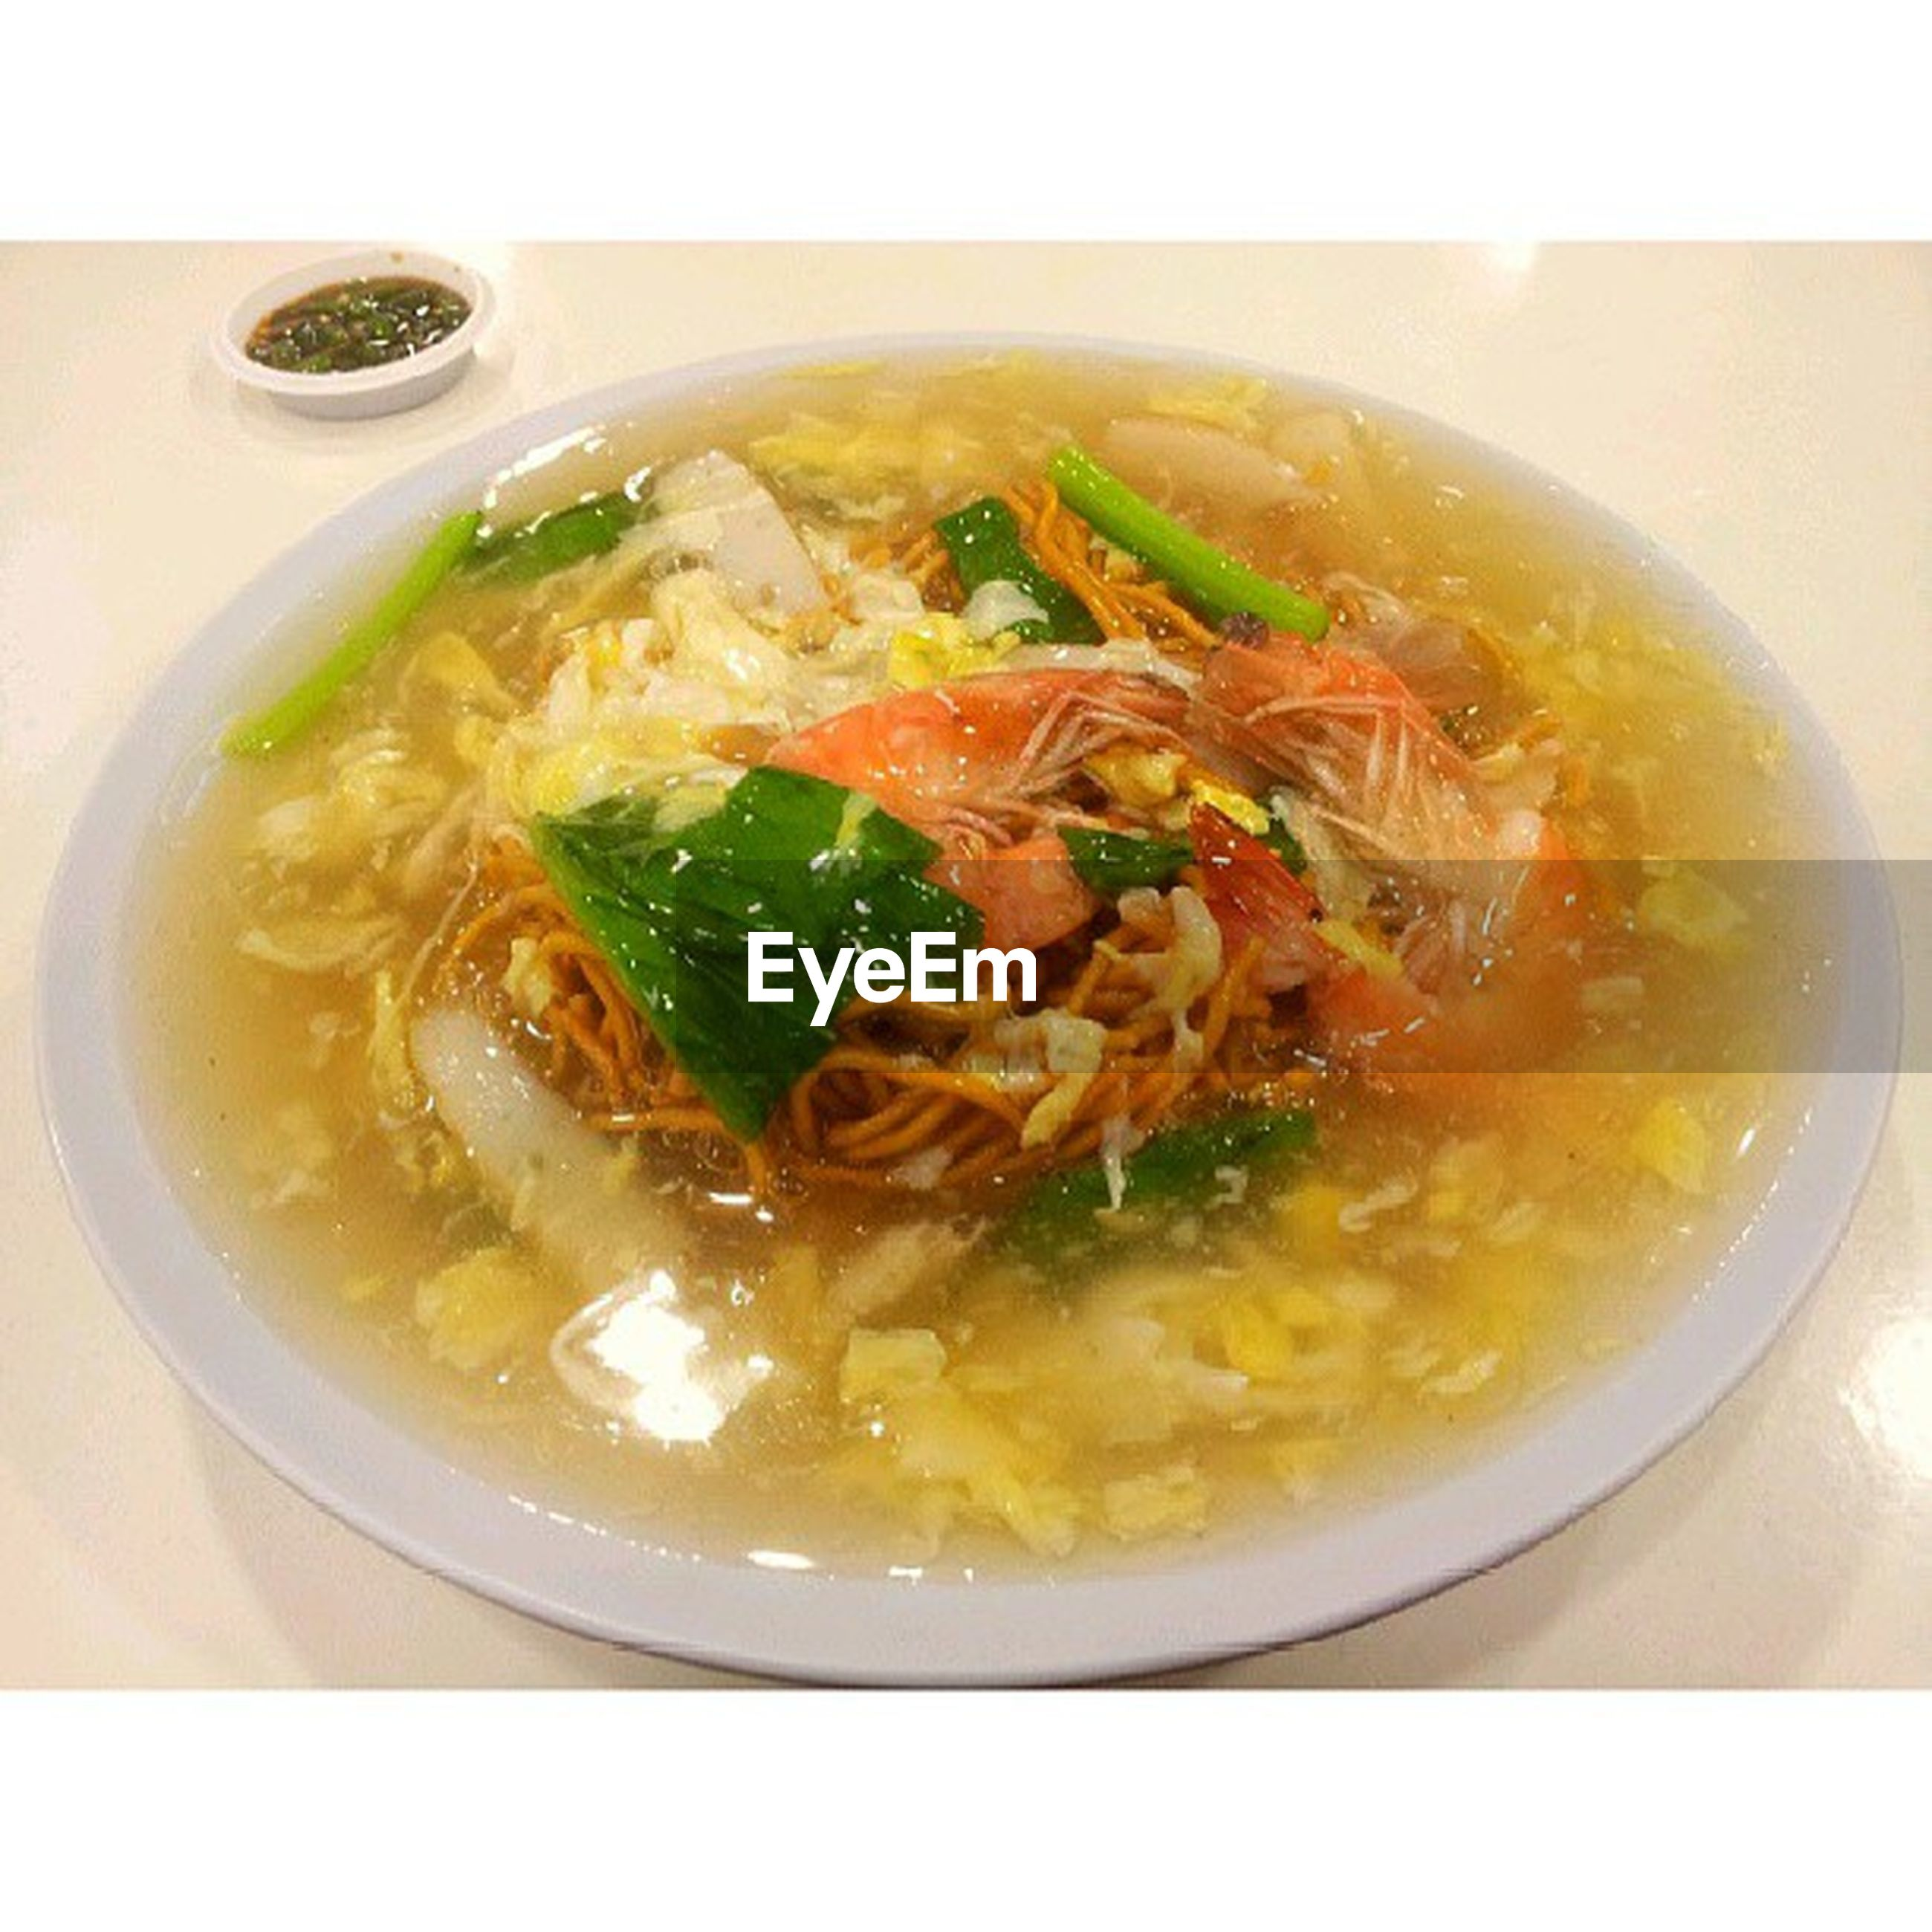 food and drink, food, indoors, freshness, ready-to-eat, bowl, meal, soup, healthy eating, close-up, serving size, noodles, still life, plate, high angle view, cooked, meat, table, healthy lifestyle, spoon